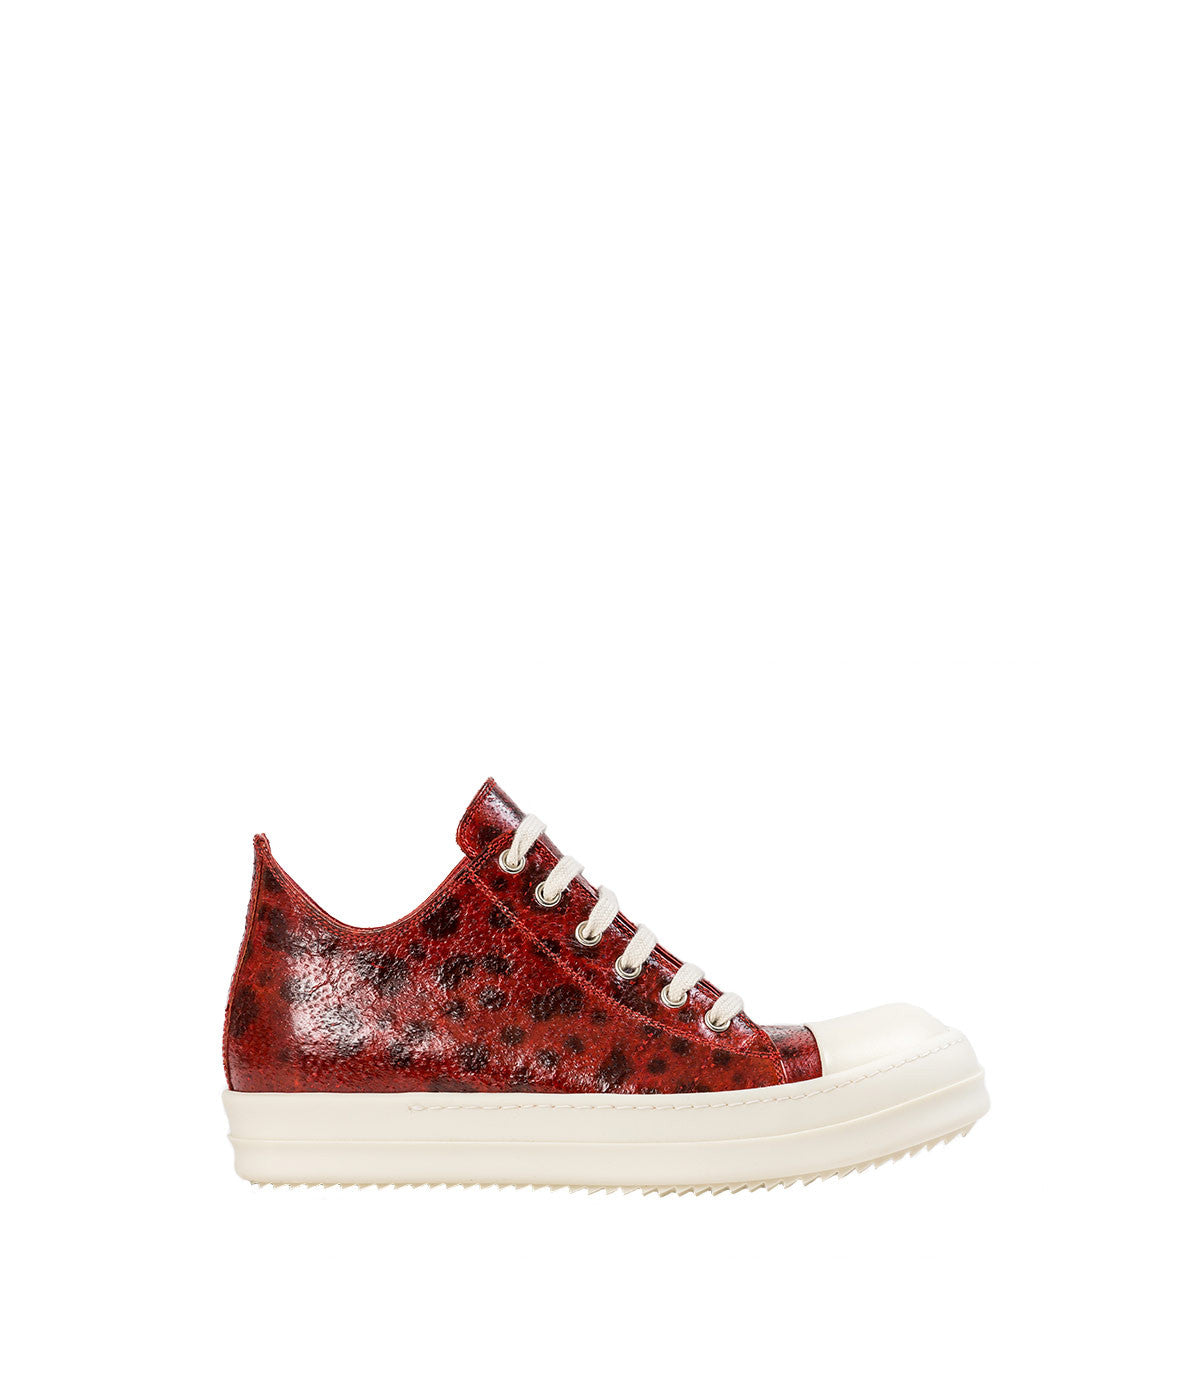 Red Pesce Lupo Sneakers